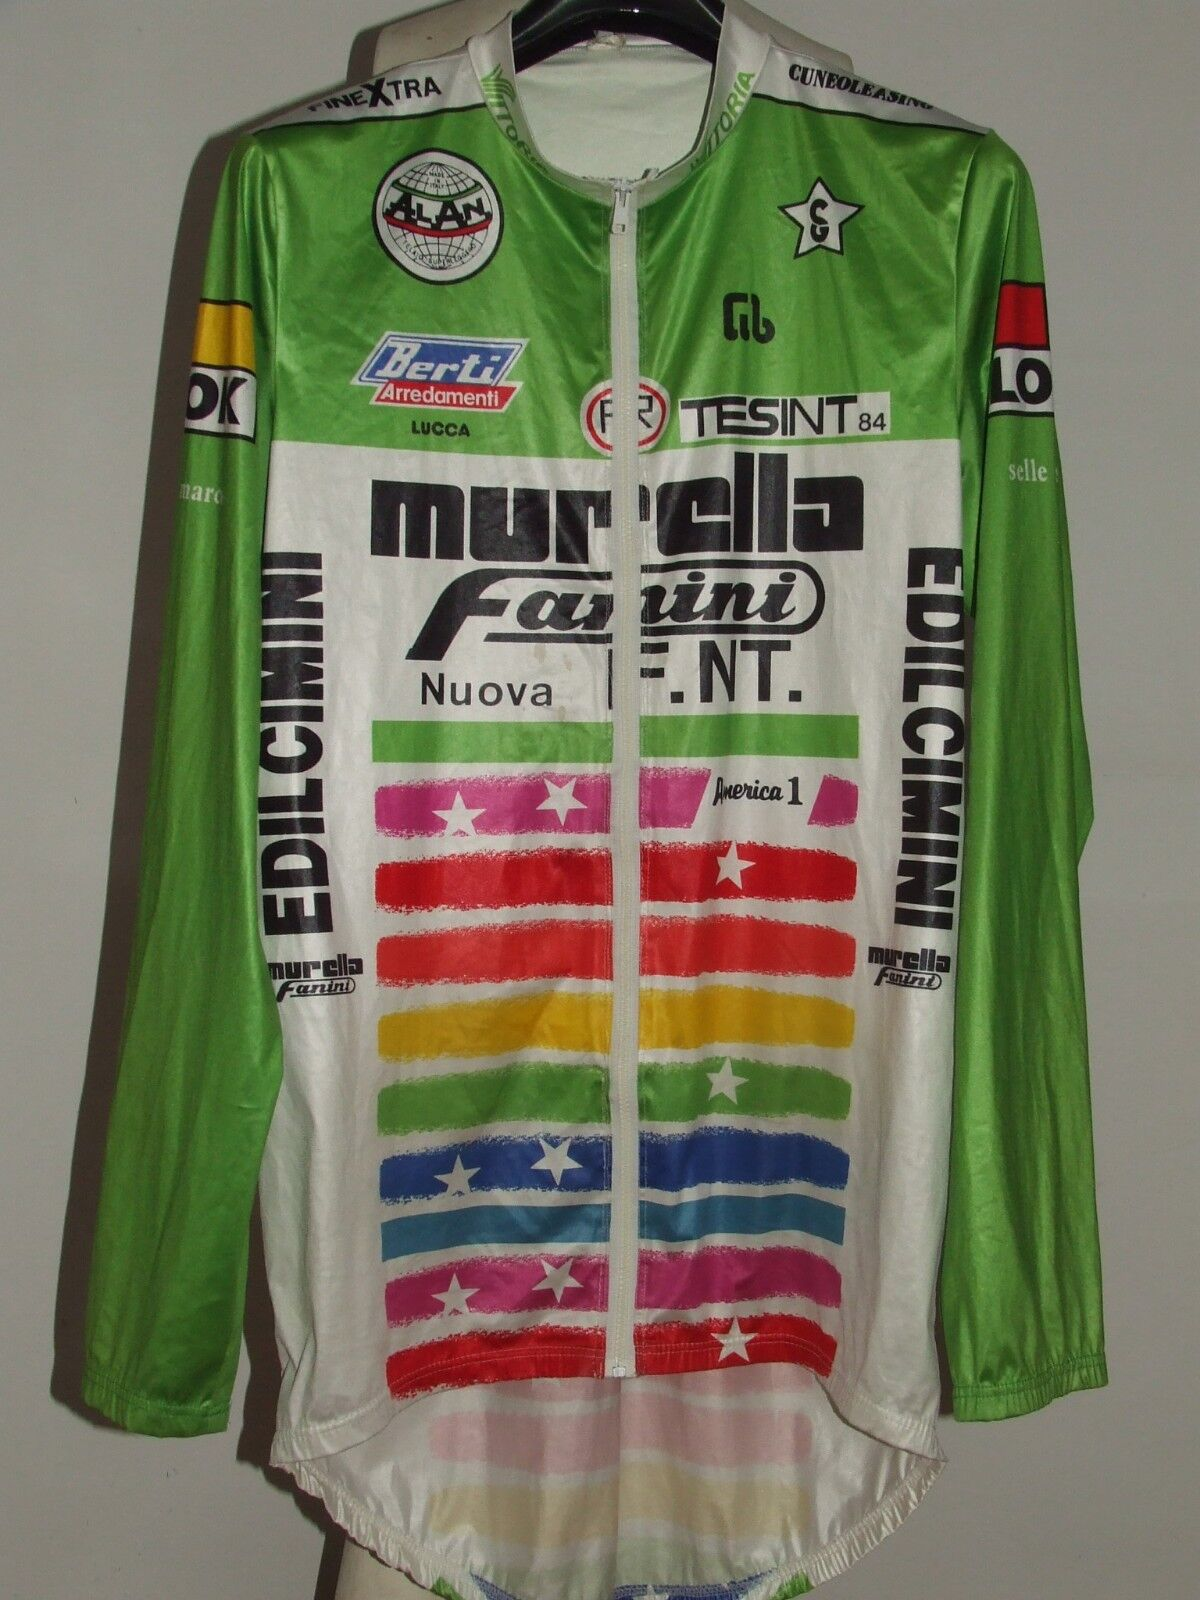 MAGLIA BICI GIACCA CICLISMO SHIRT SPORT MANTELLINA  MURELLA FANINI tg. XXL  for your style of play at the cheapest prices